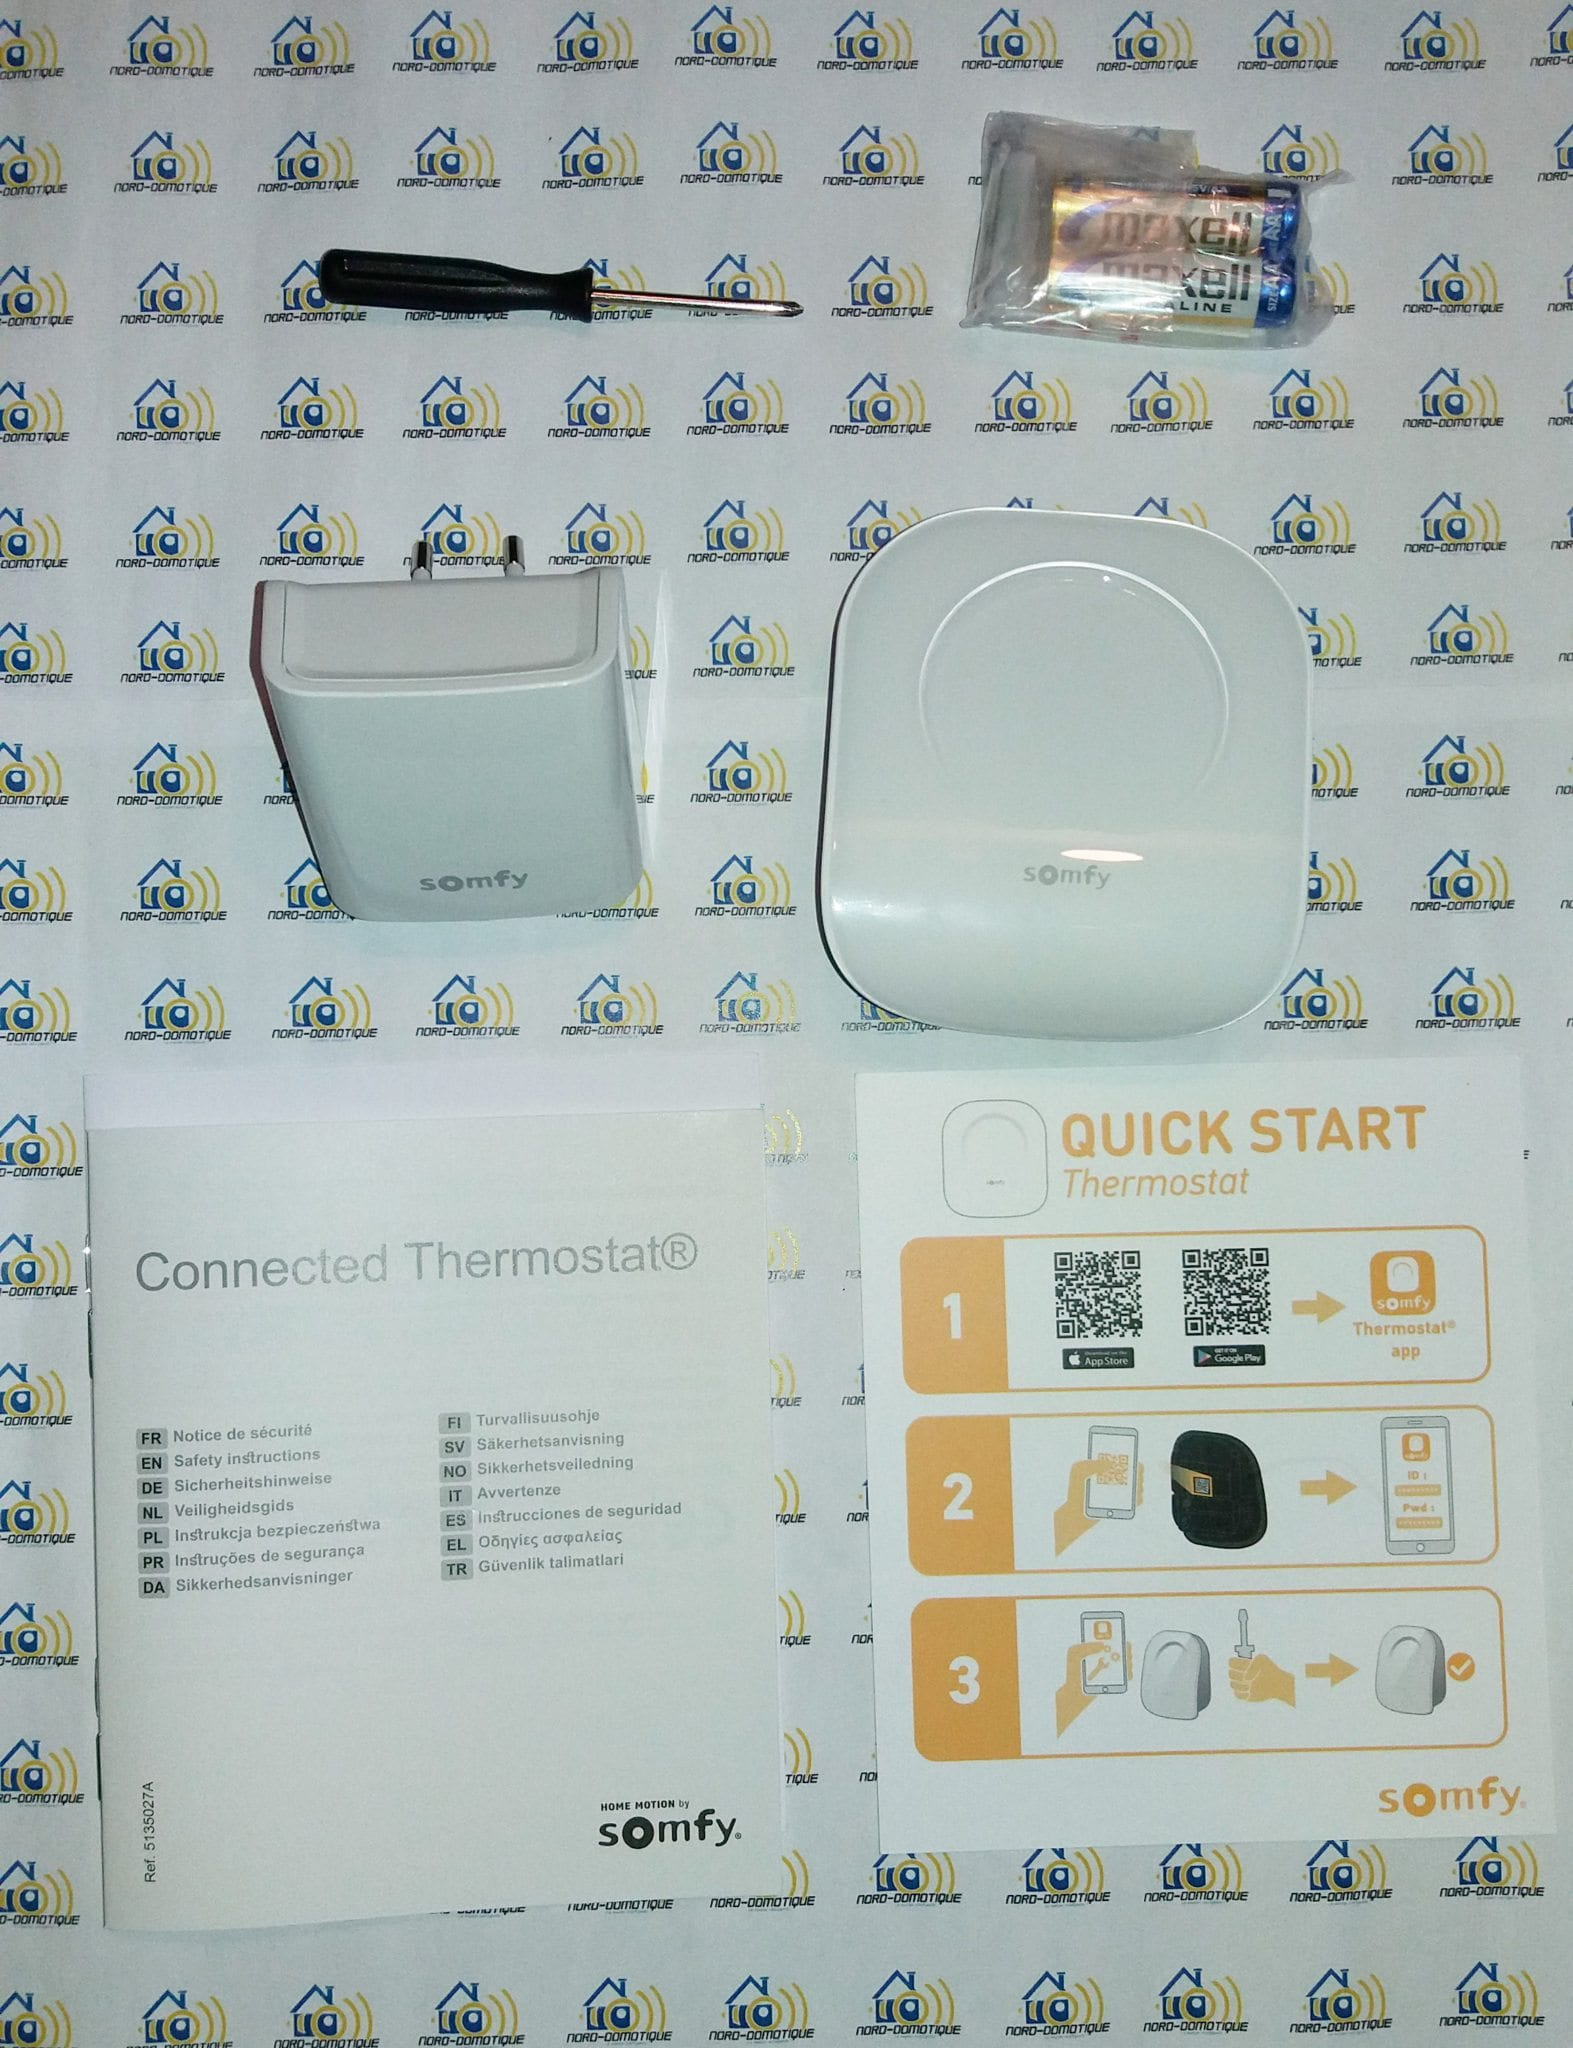 05 Test du thermostat connecté filaire Somfy